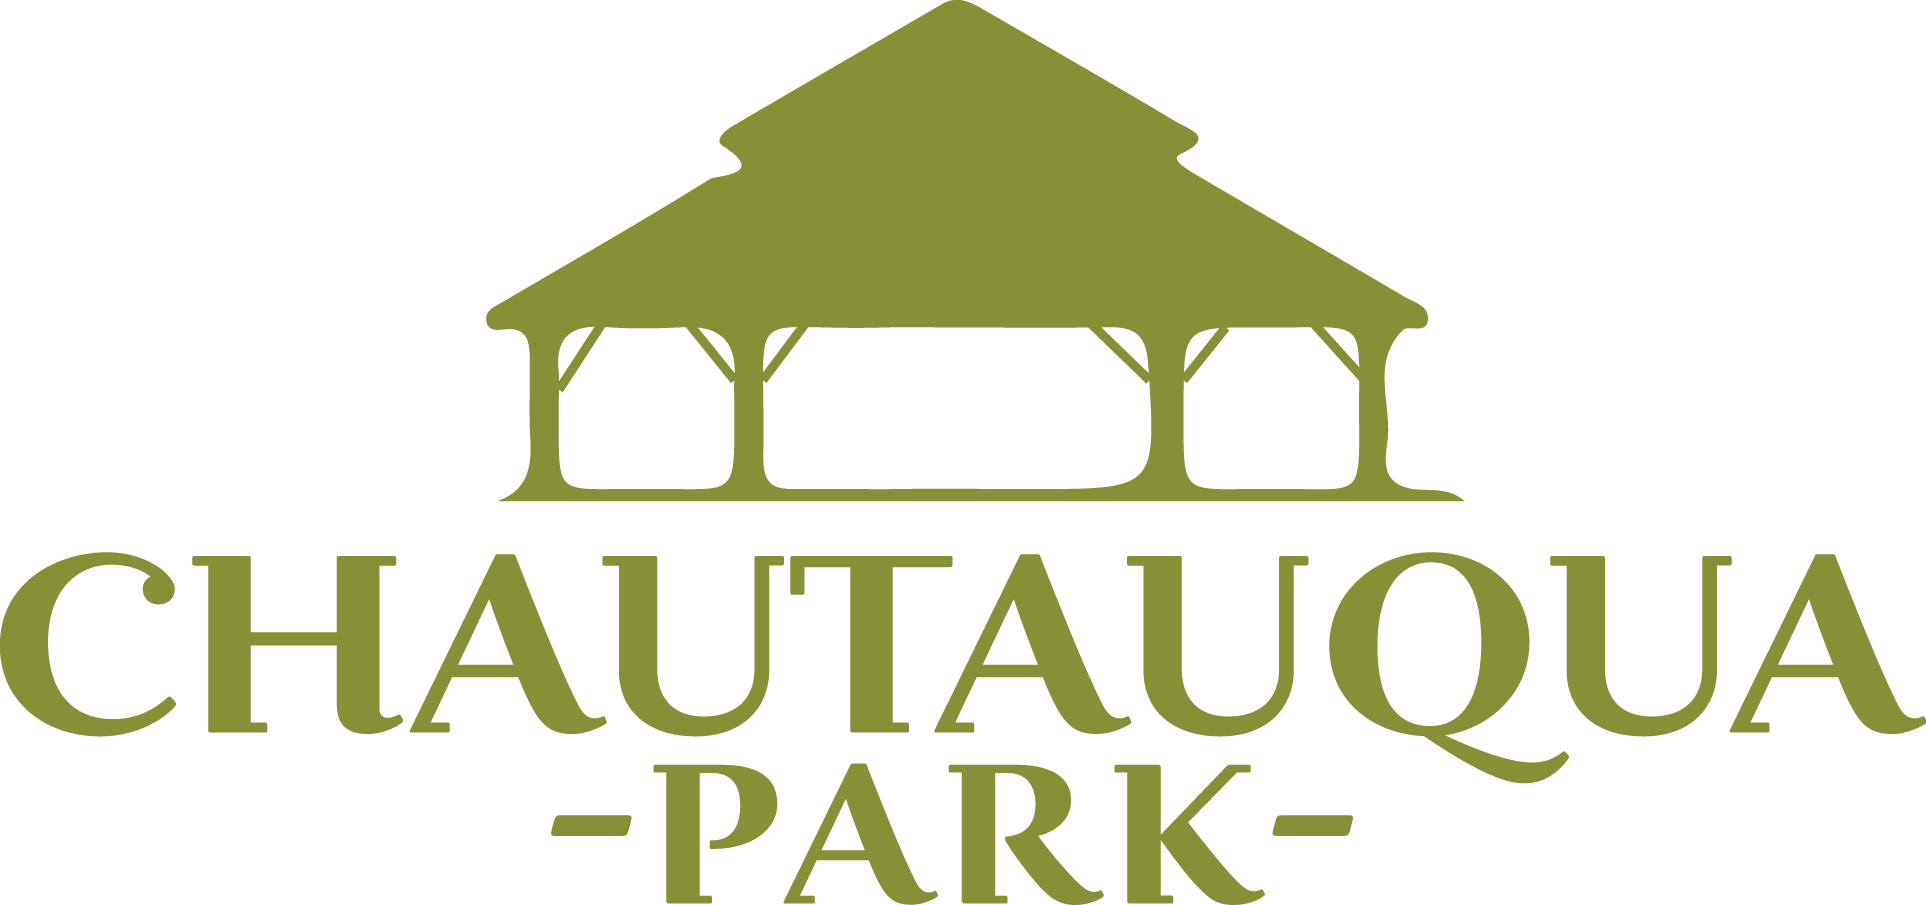 Playground clipart small park. Chautauqua crystal springs mississippi